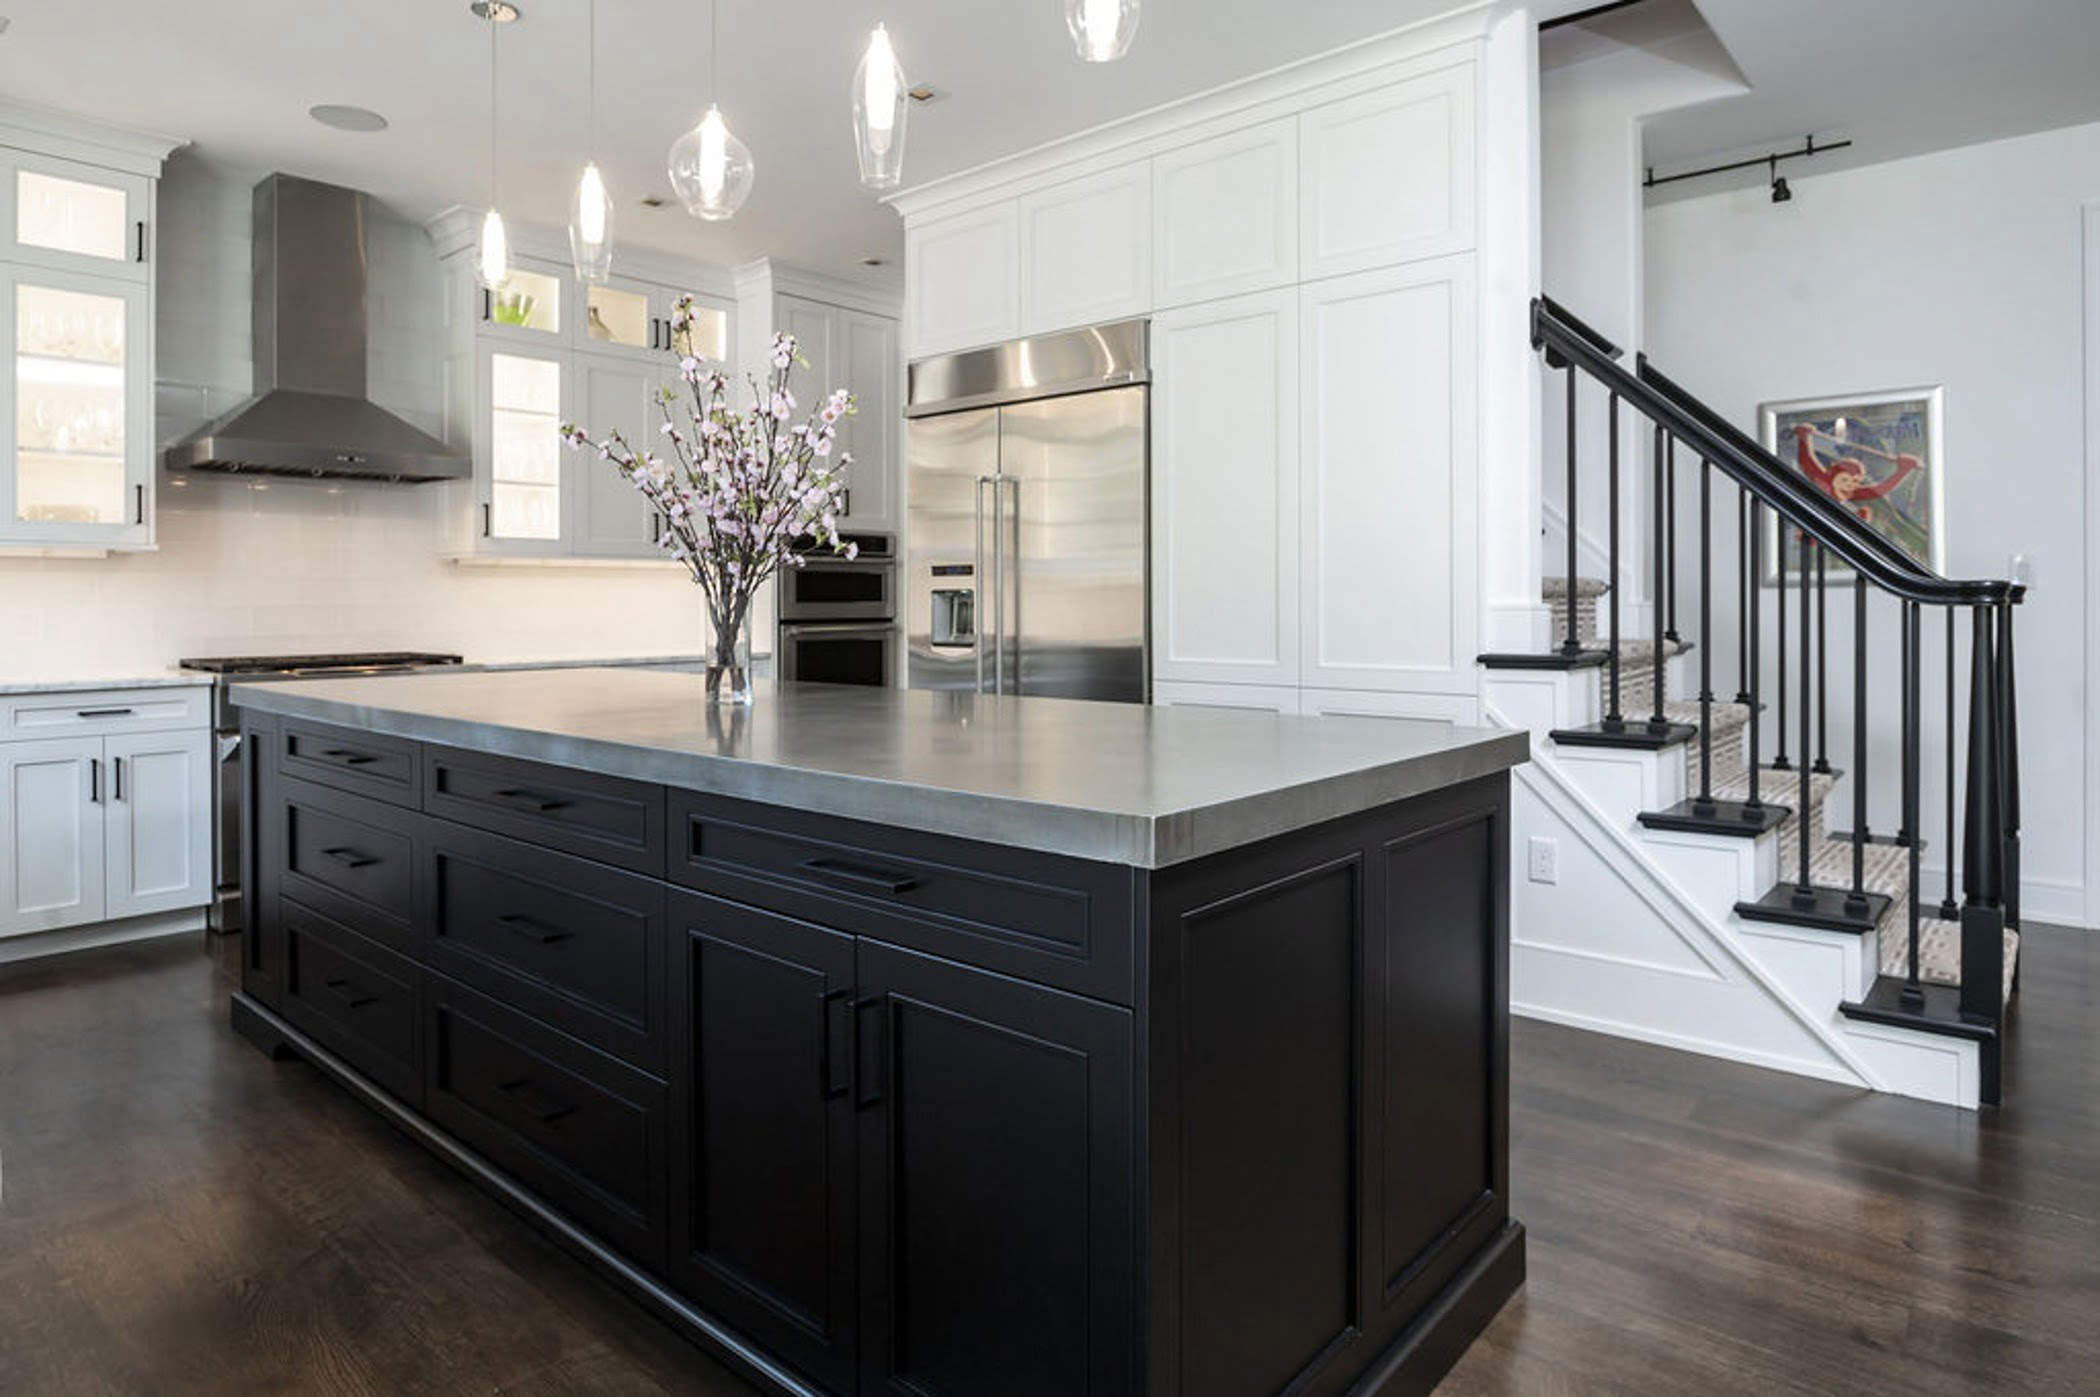 Modern kitchen remodel with an open concept layout including white cabinetry, marble countertop and a dark wood center island (2)